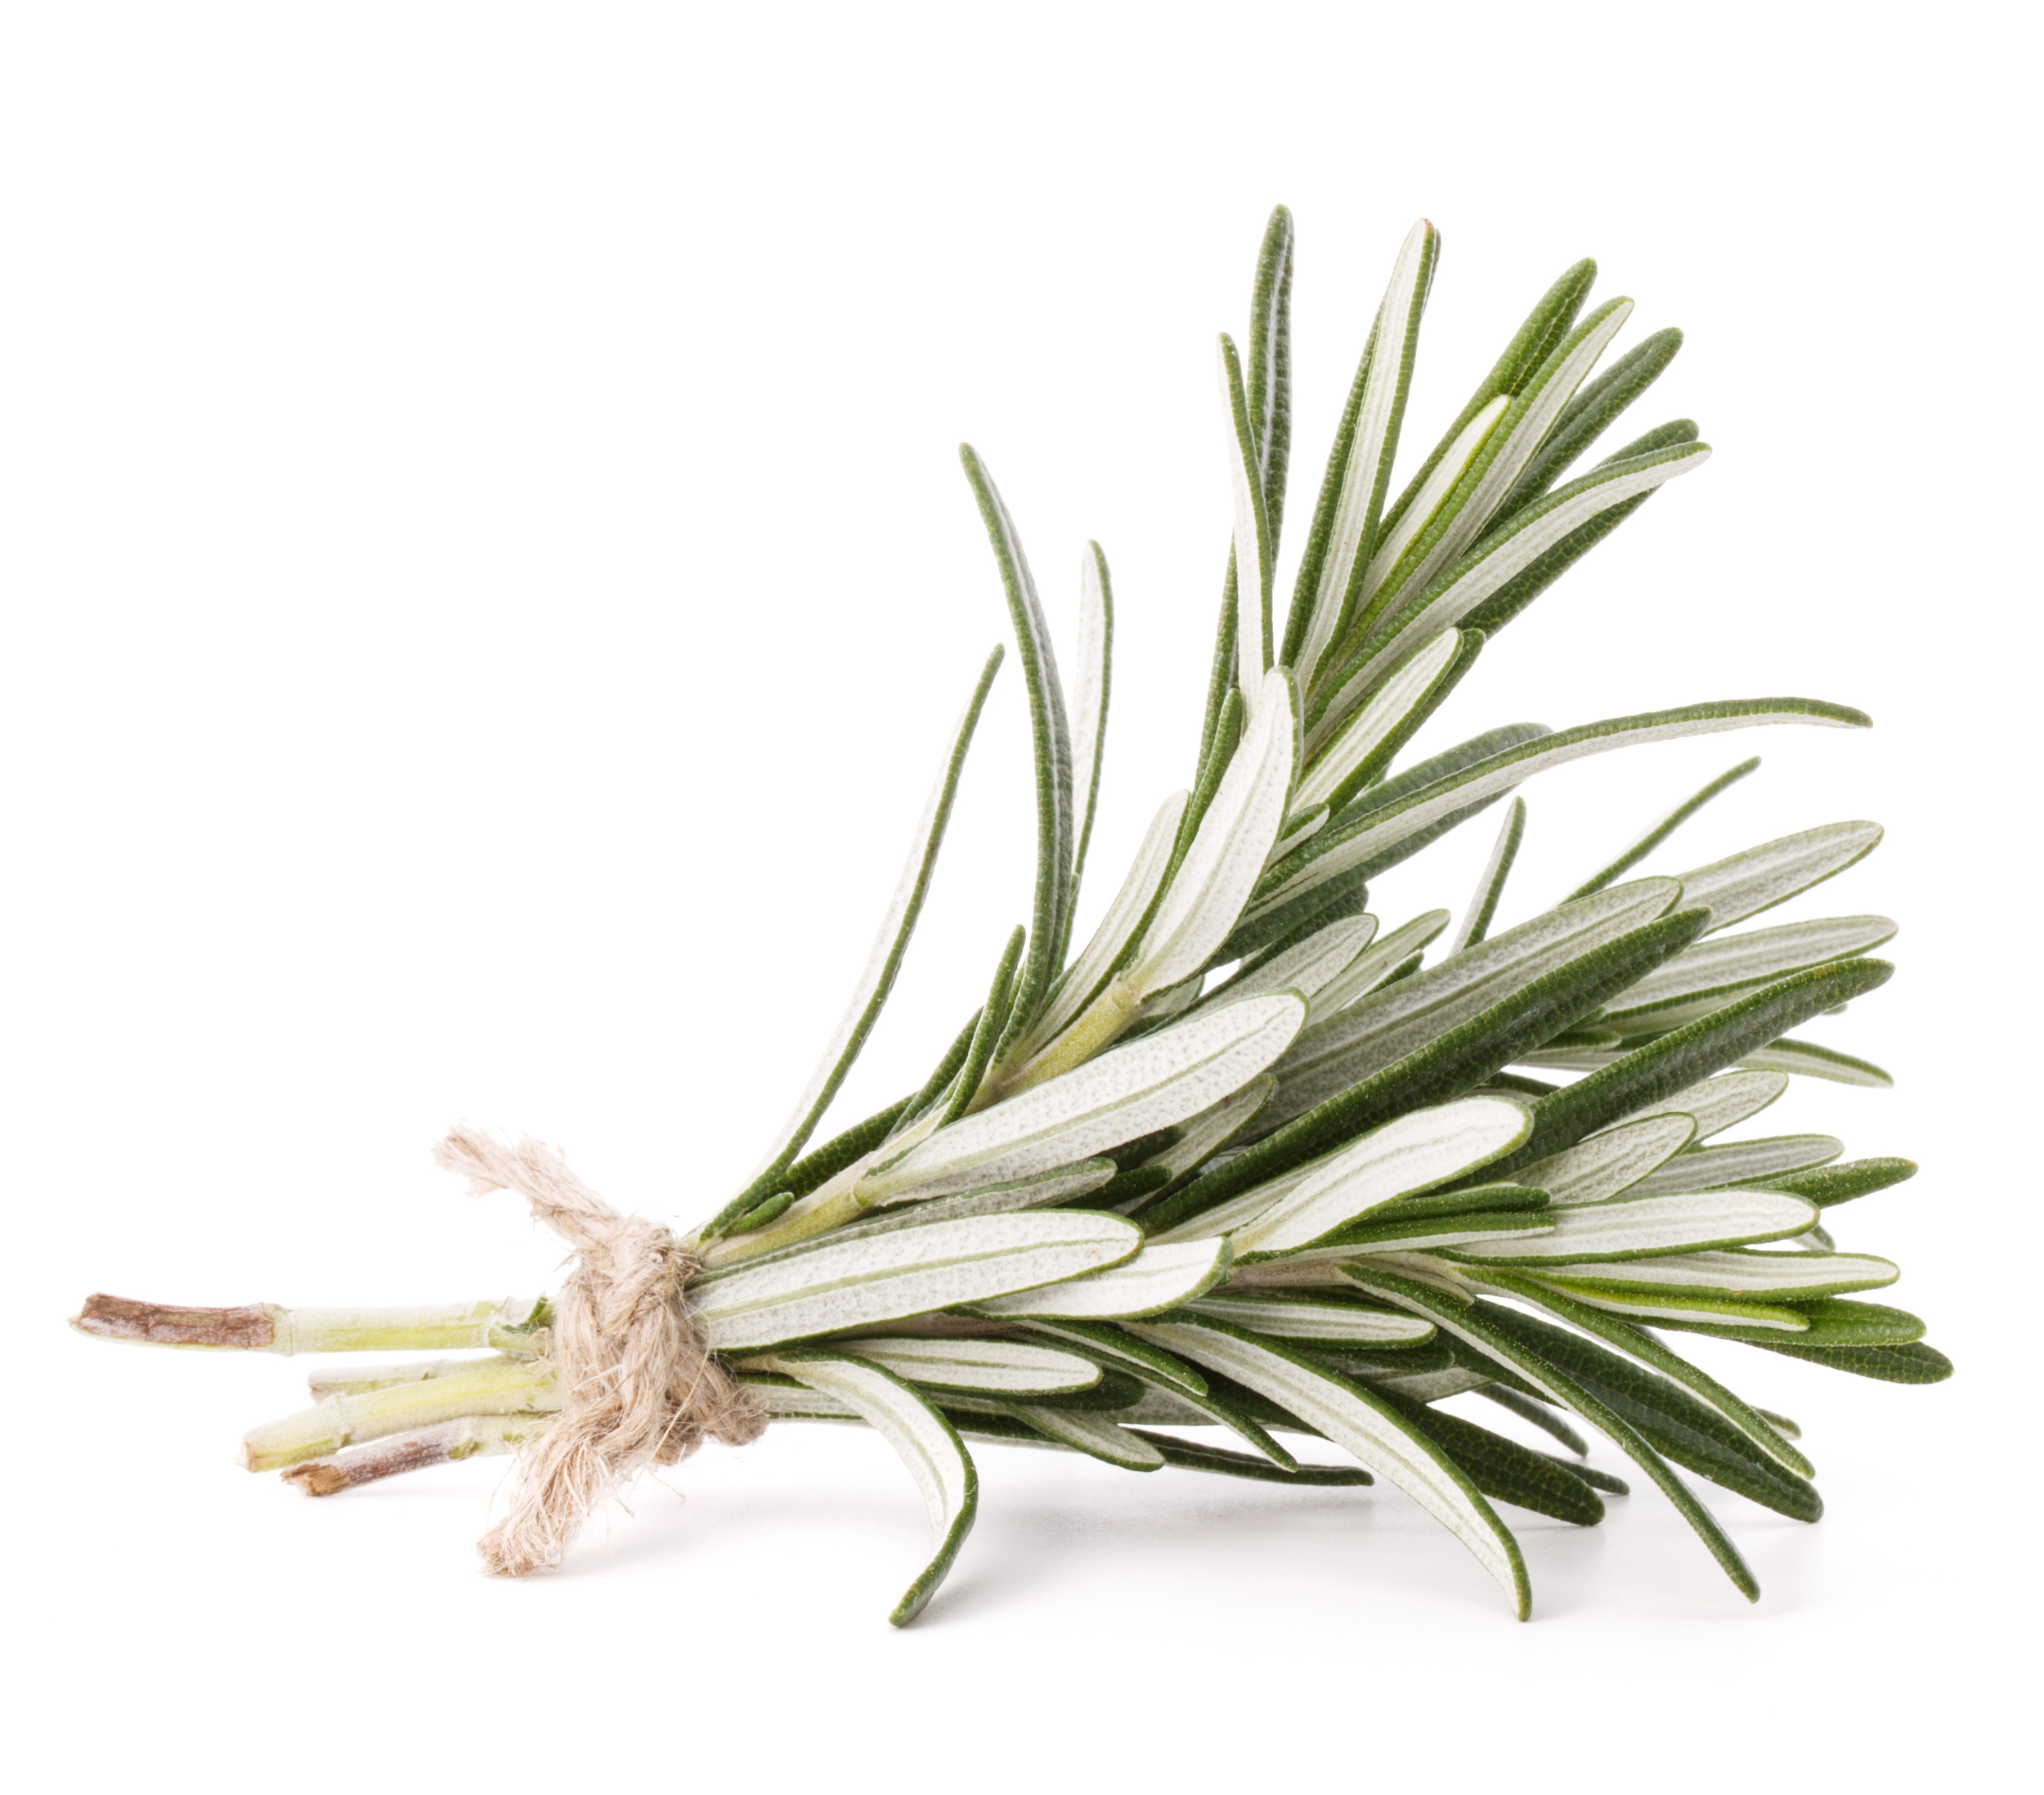 bigstock-rosemary-herb-spice-leaves-iso-62510585.jpg